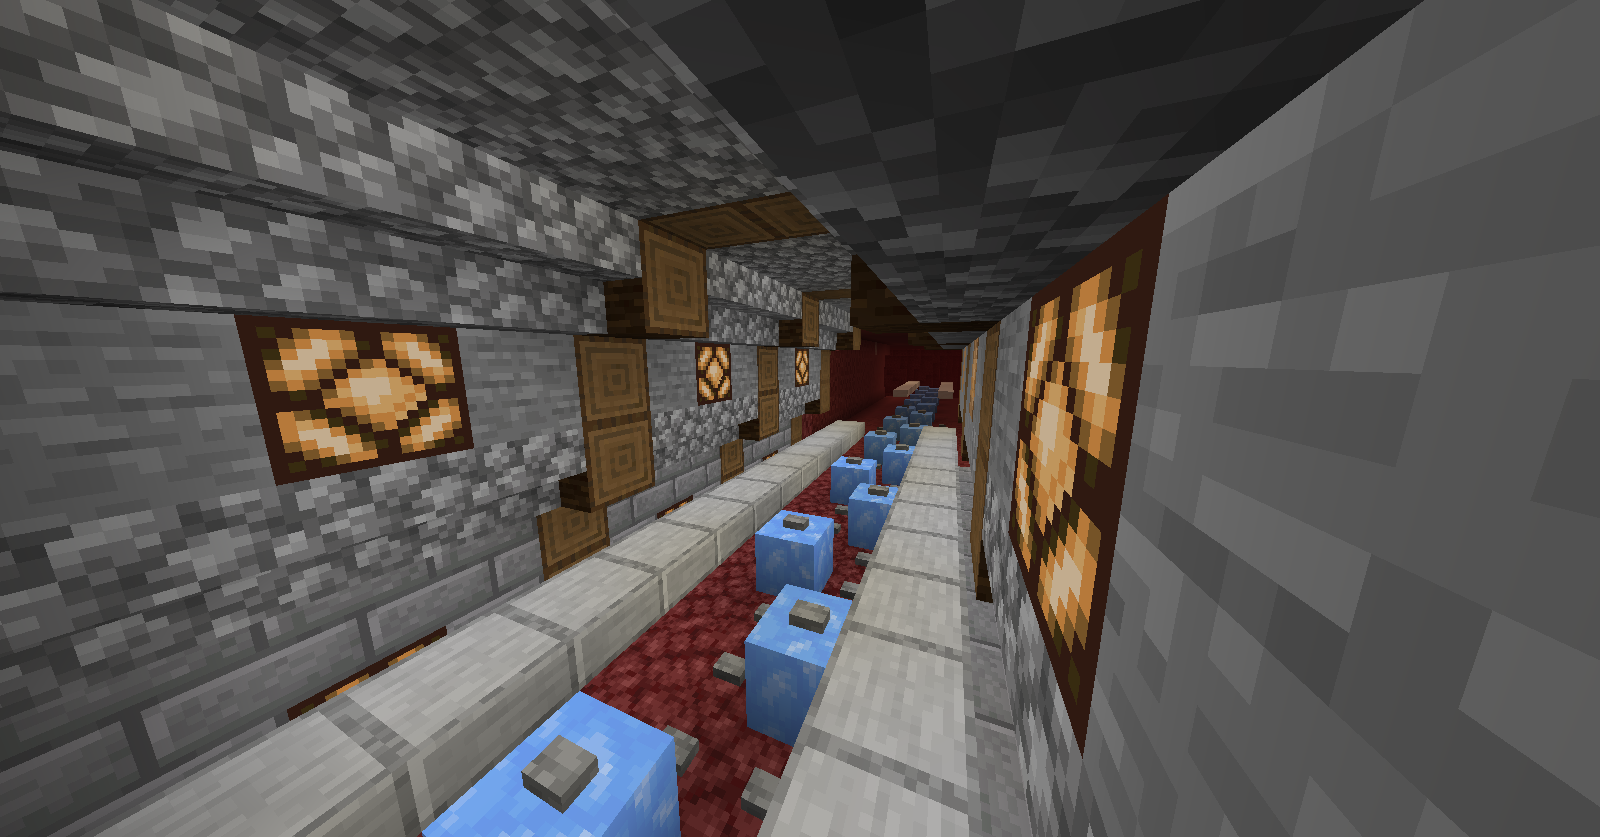 Which Nether Tunnel Should I Build Creative Mode Minecraft Java Edition Minecraft Forum Minecraft Forum Movement inside a blue cold ice tunnel. which nether tunnel should i build